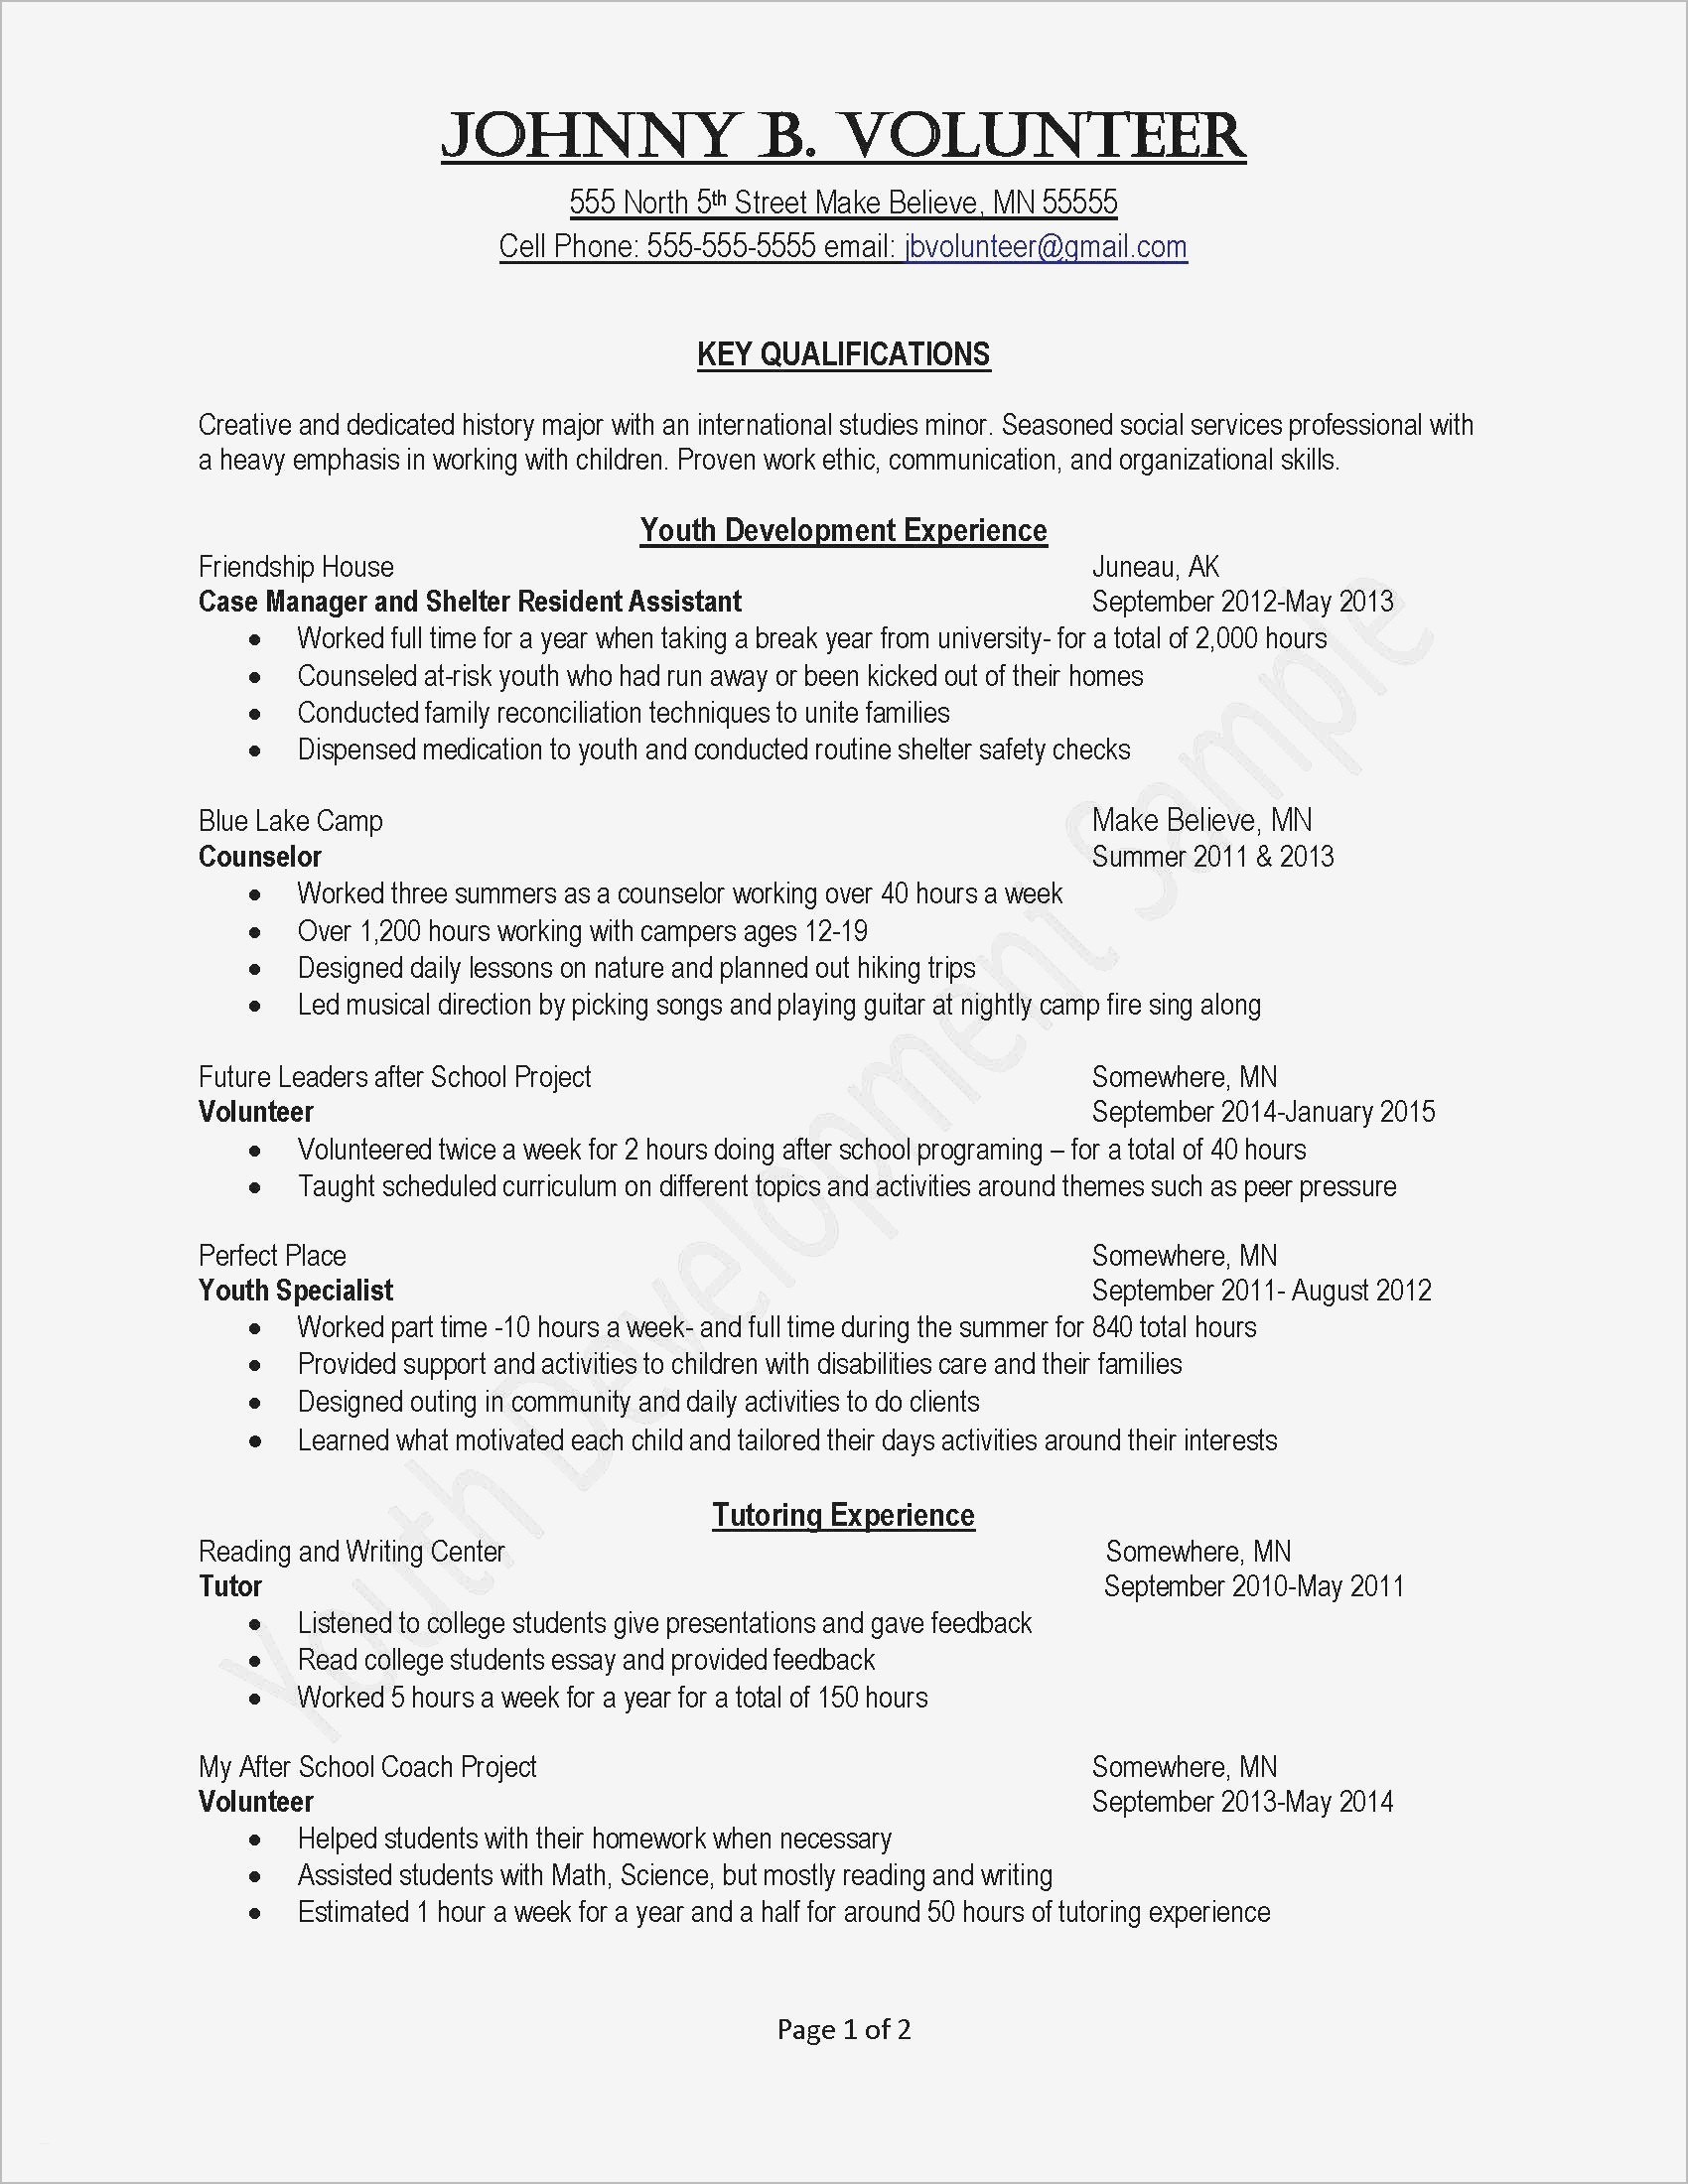 Federal Cover Letter Template - Resume Cover Letter format Beautiful Lovely Job Fer Letter Template